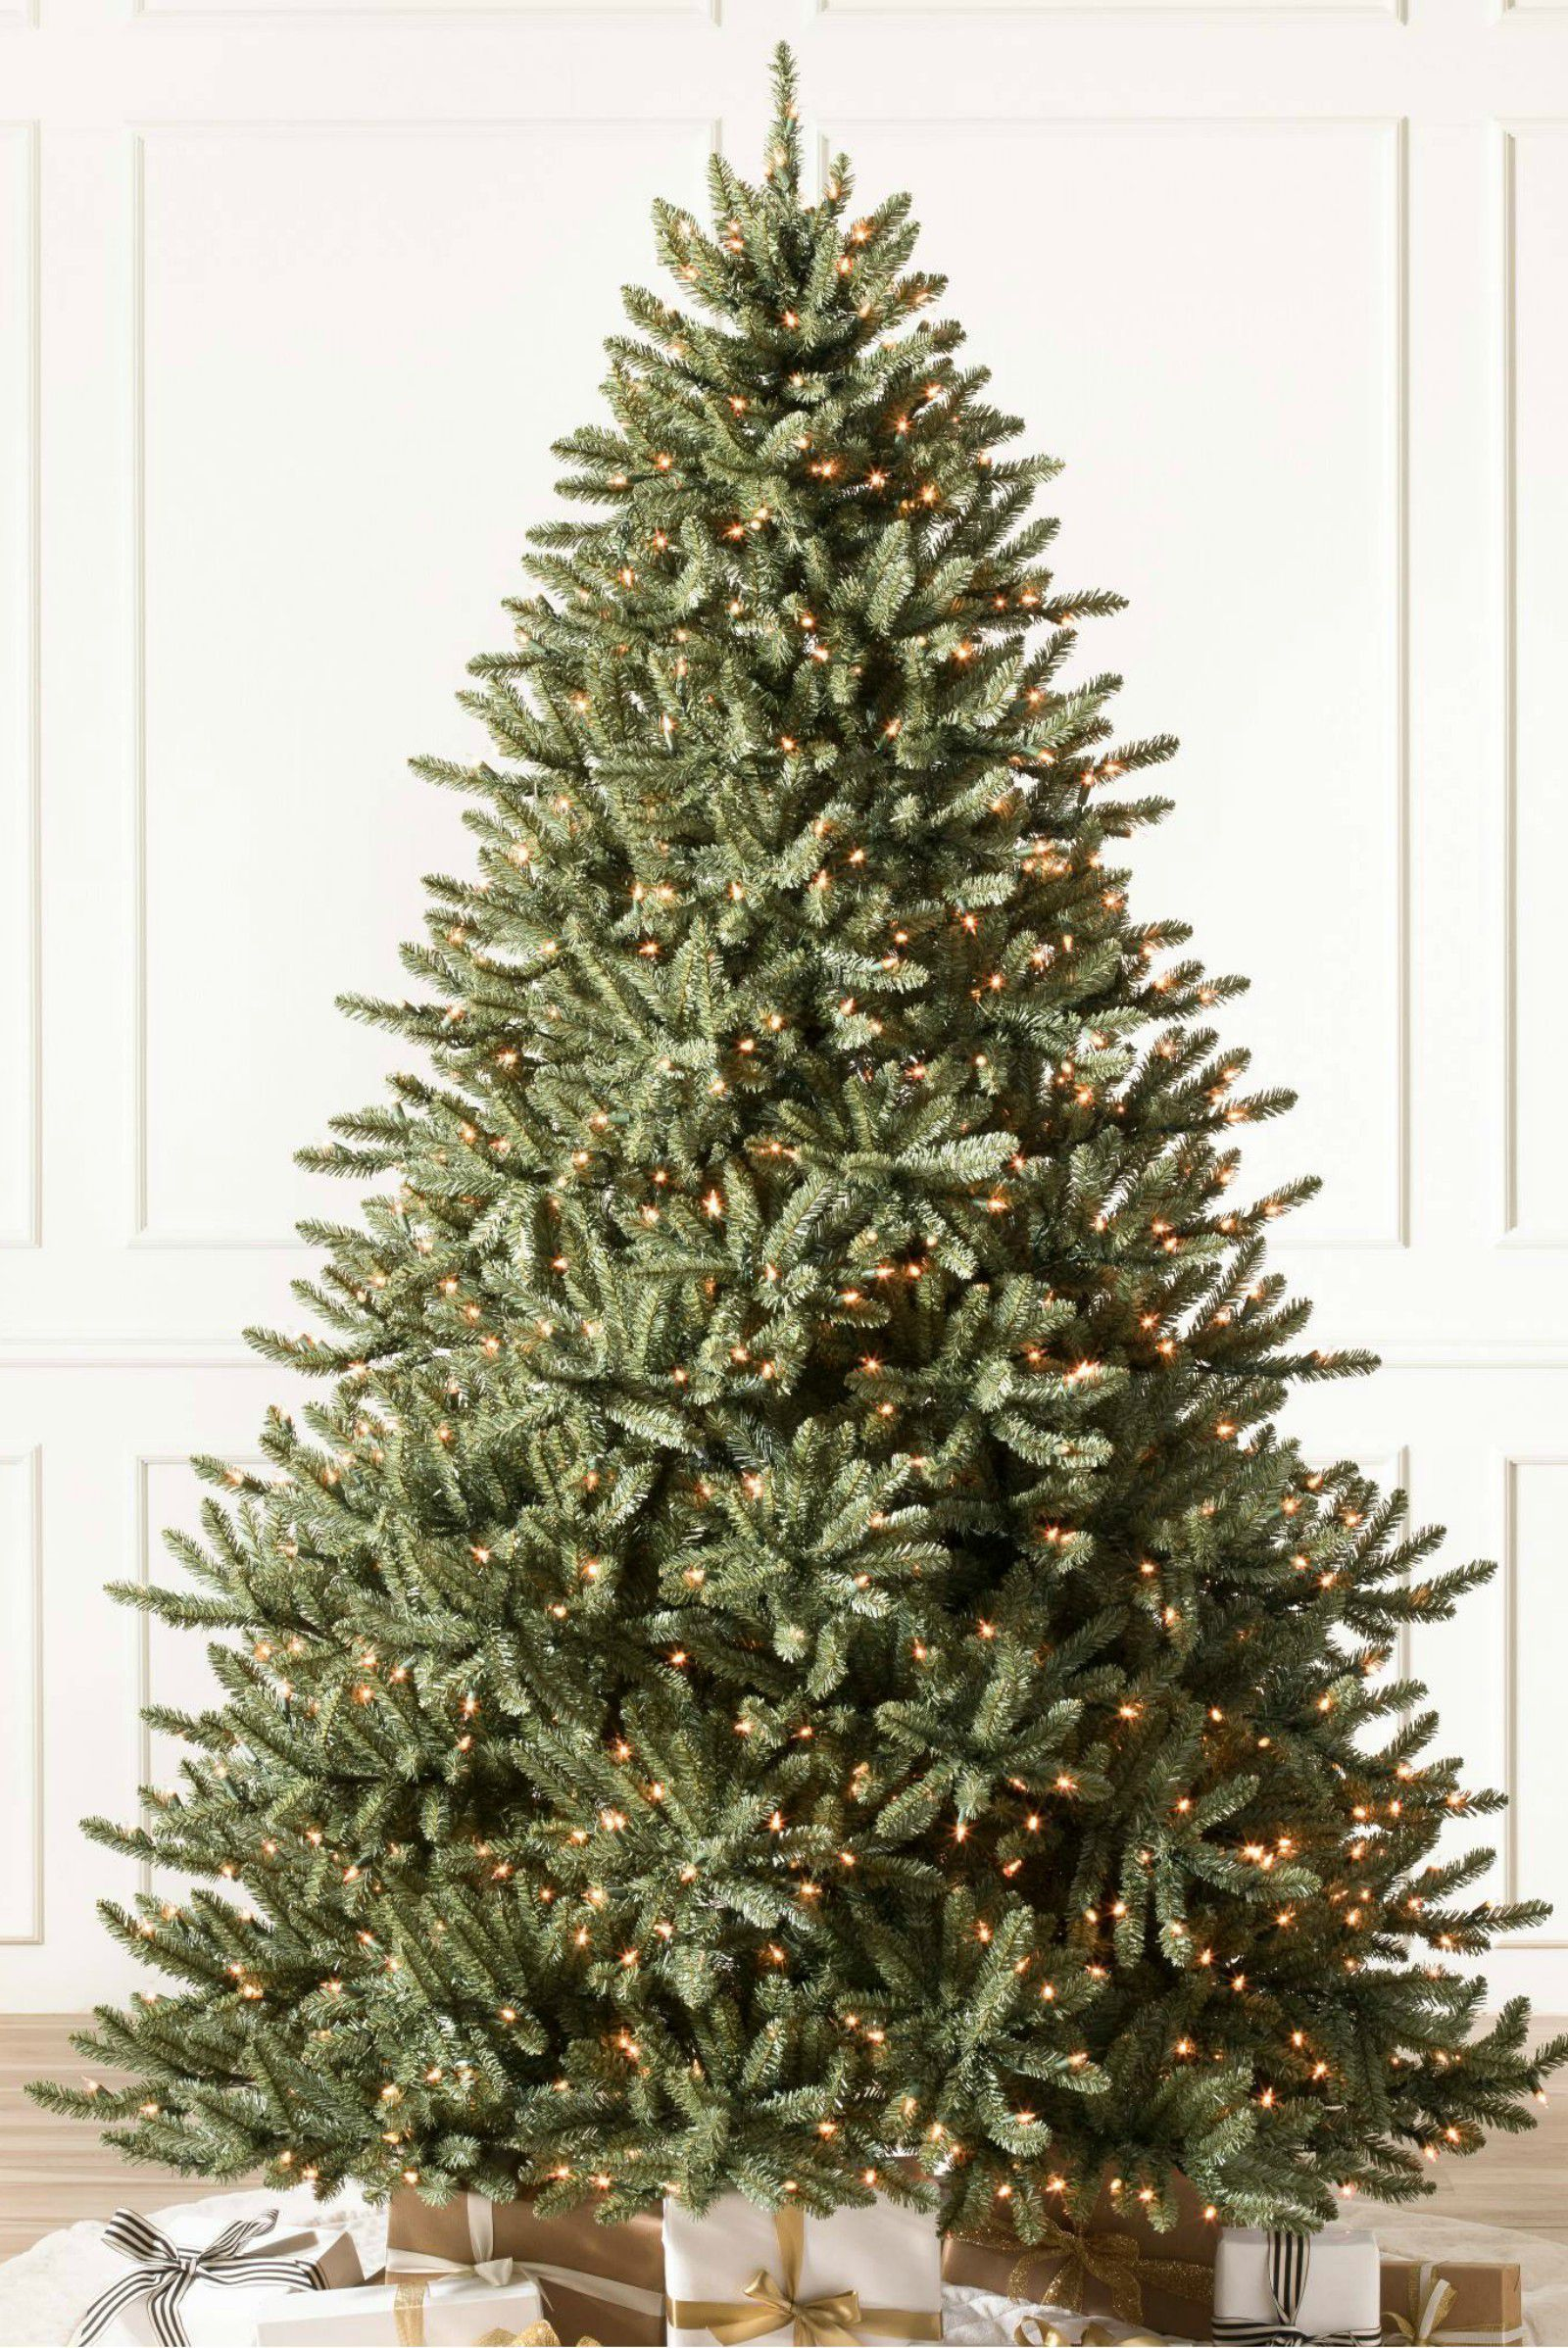 25 Best Artificial Christmas Trees Of 2020 Where To Buy Fake Christmas Trees